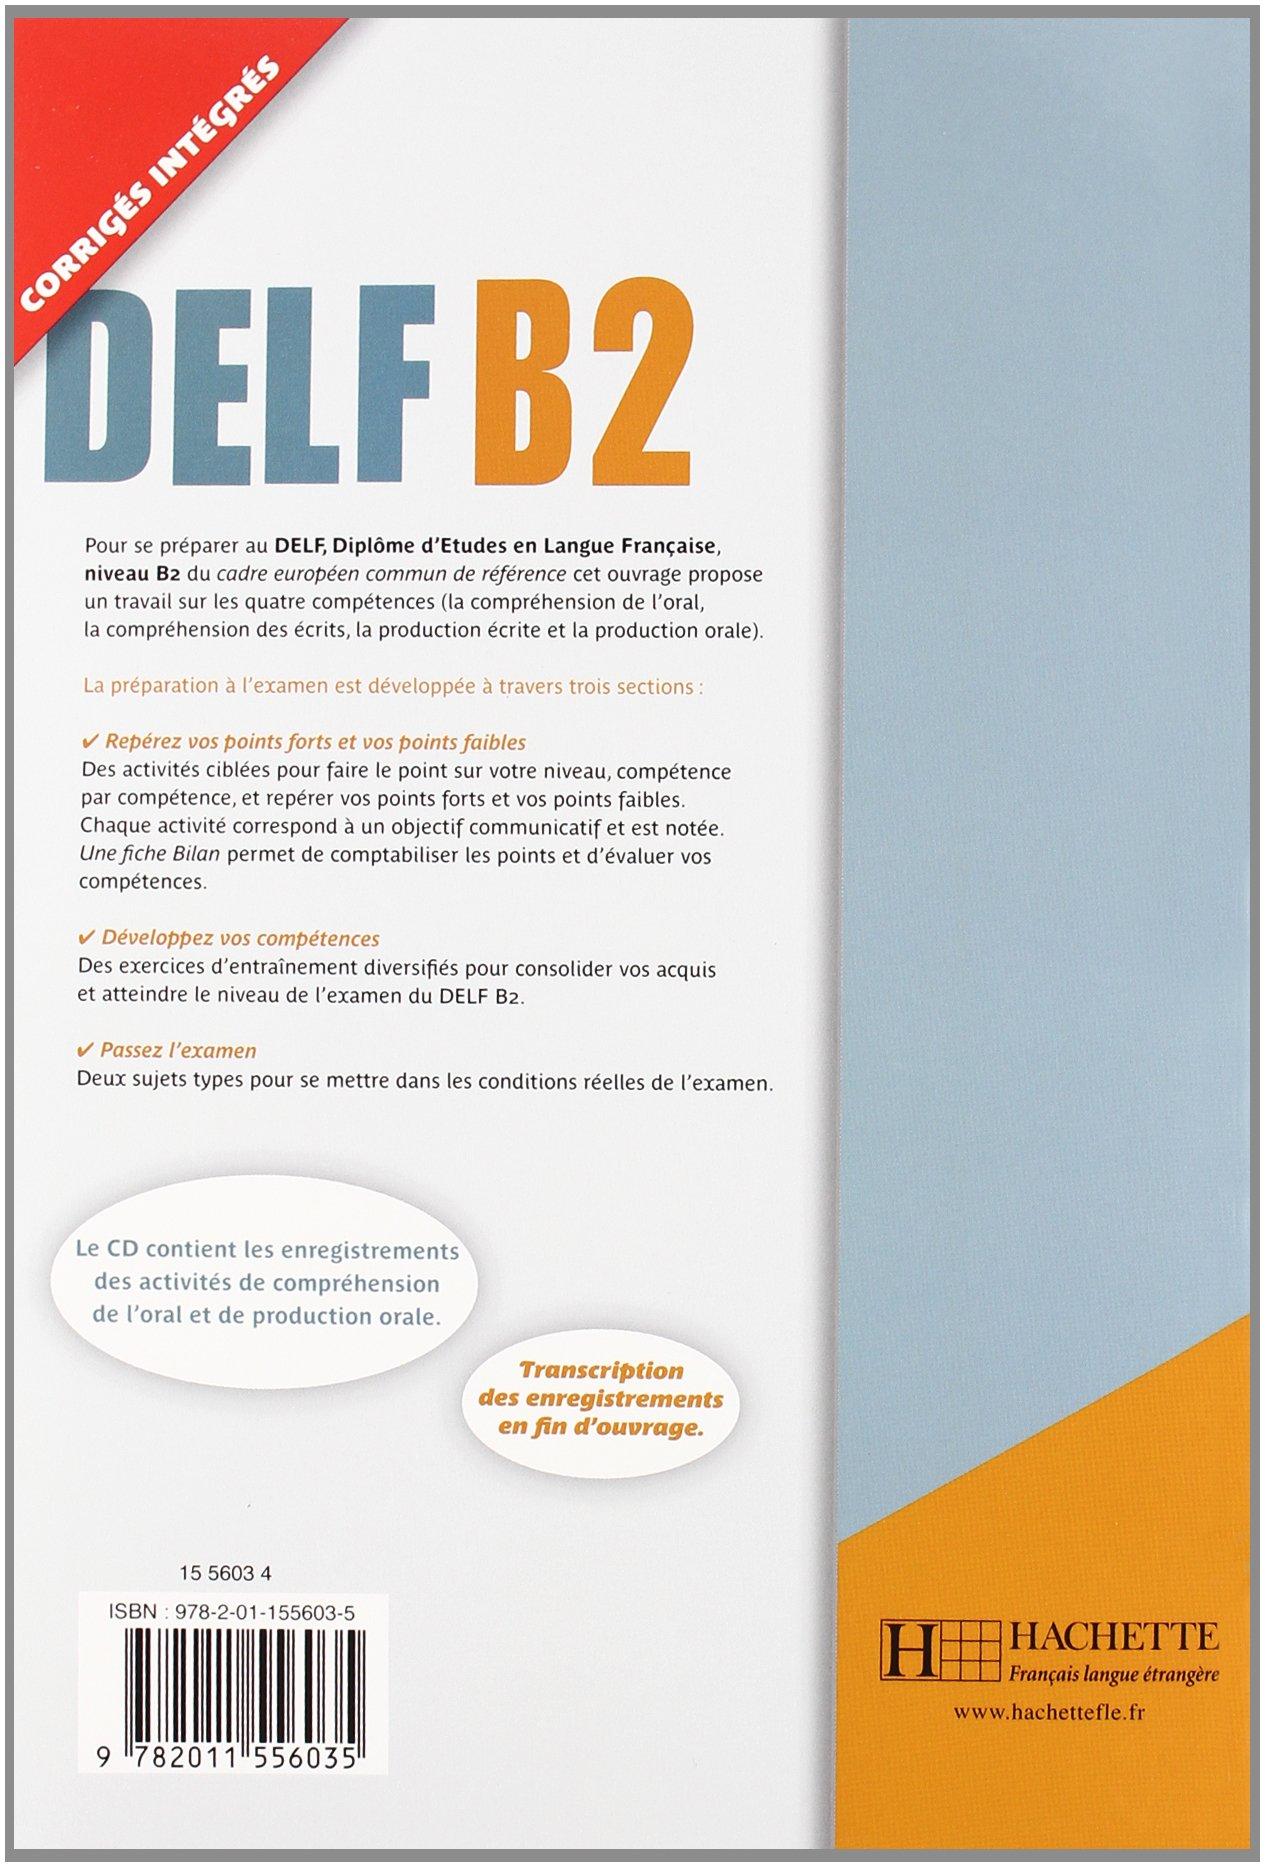 Delf B2 Livre de LEleve + CD Audio (Etranger) (French Edition): Marie-Christine Jamet, Jamet: 9782011556035: Amazon.com: Books